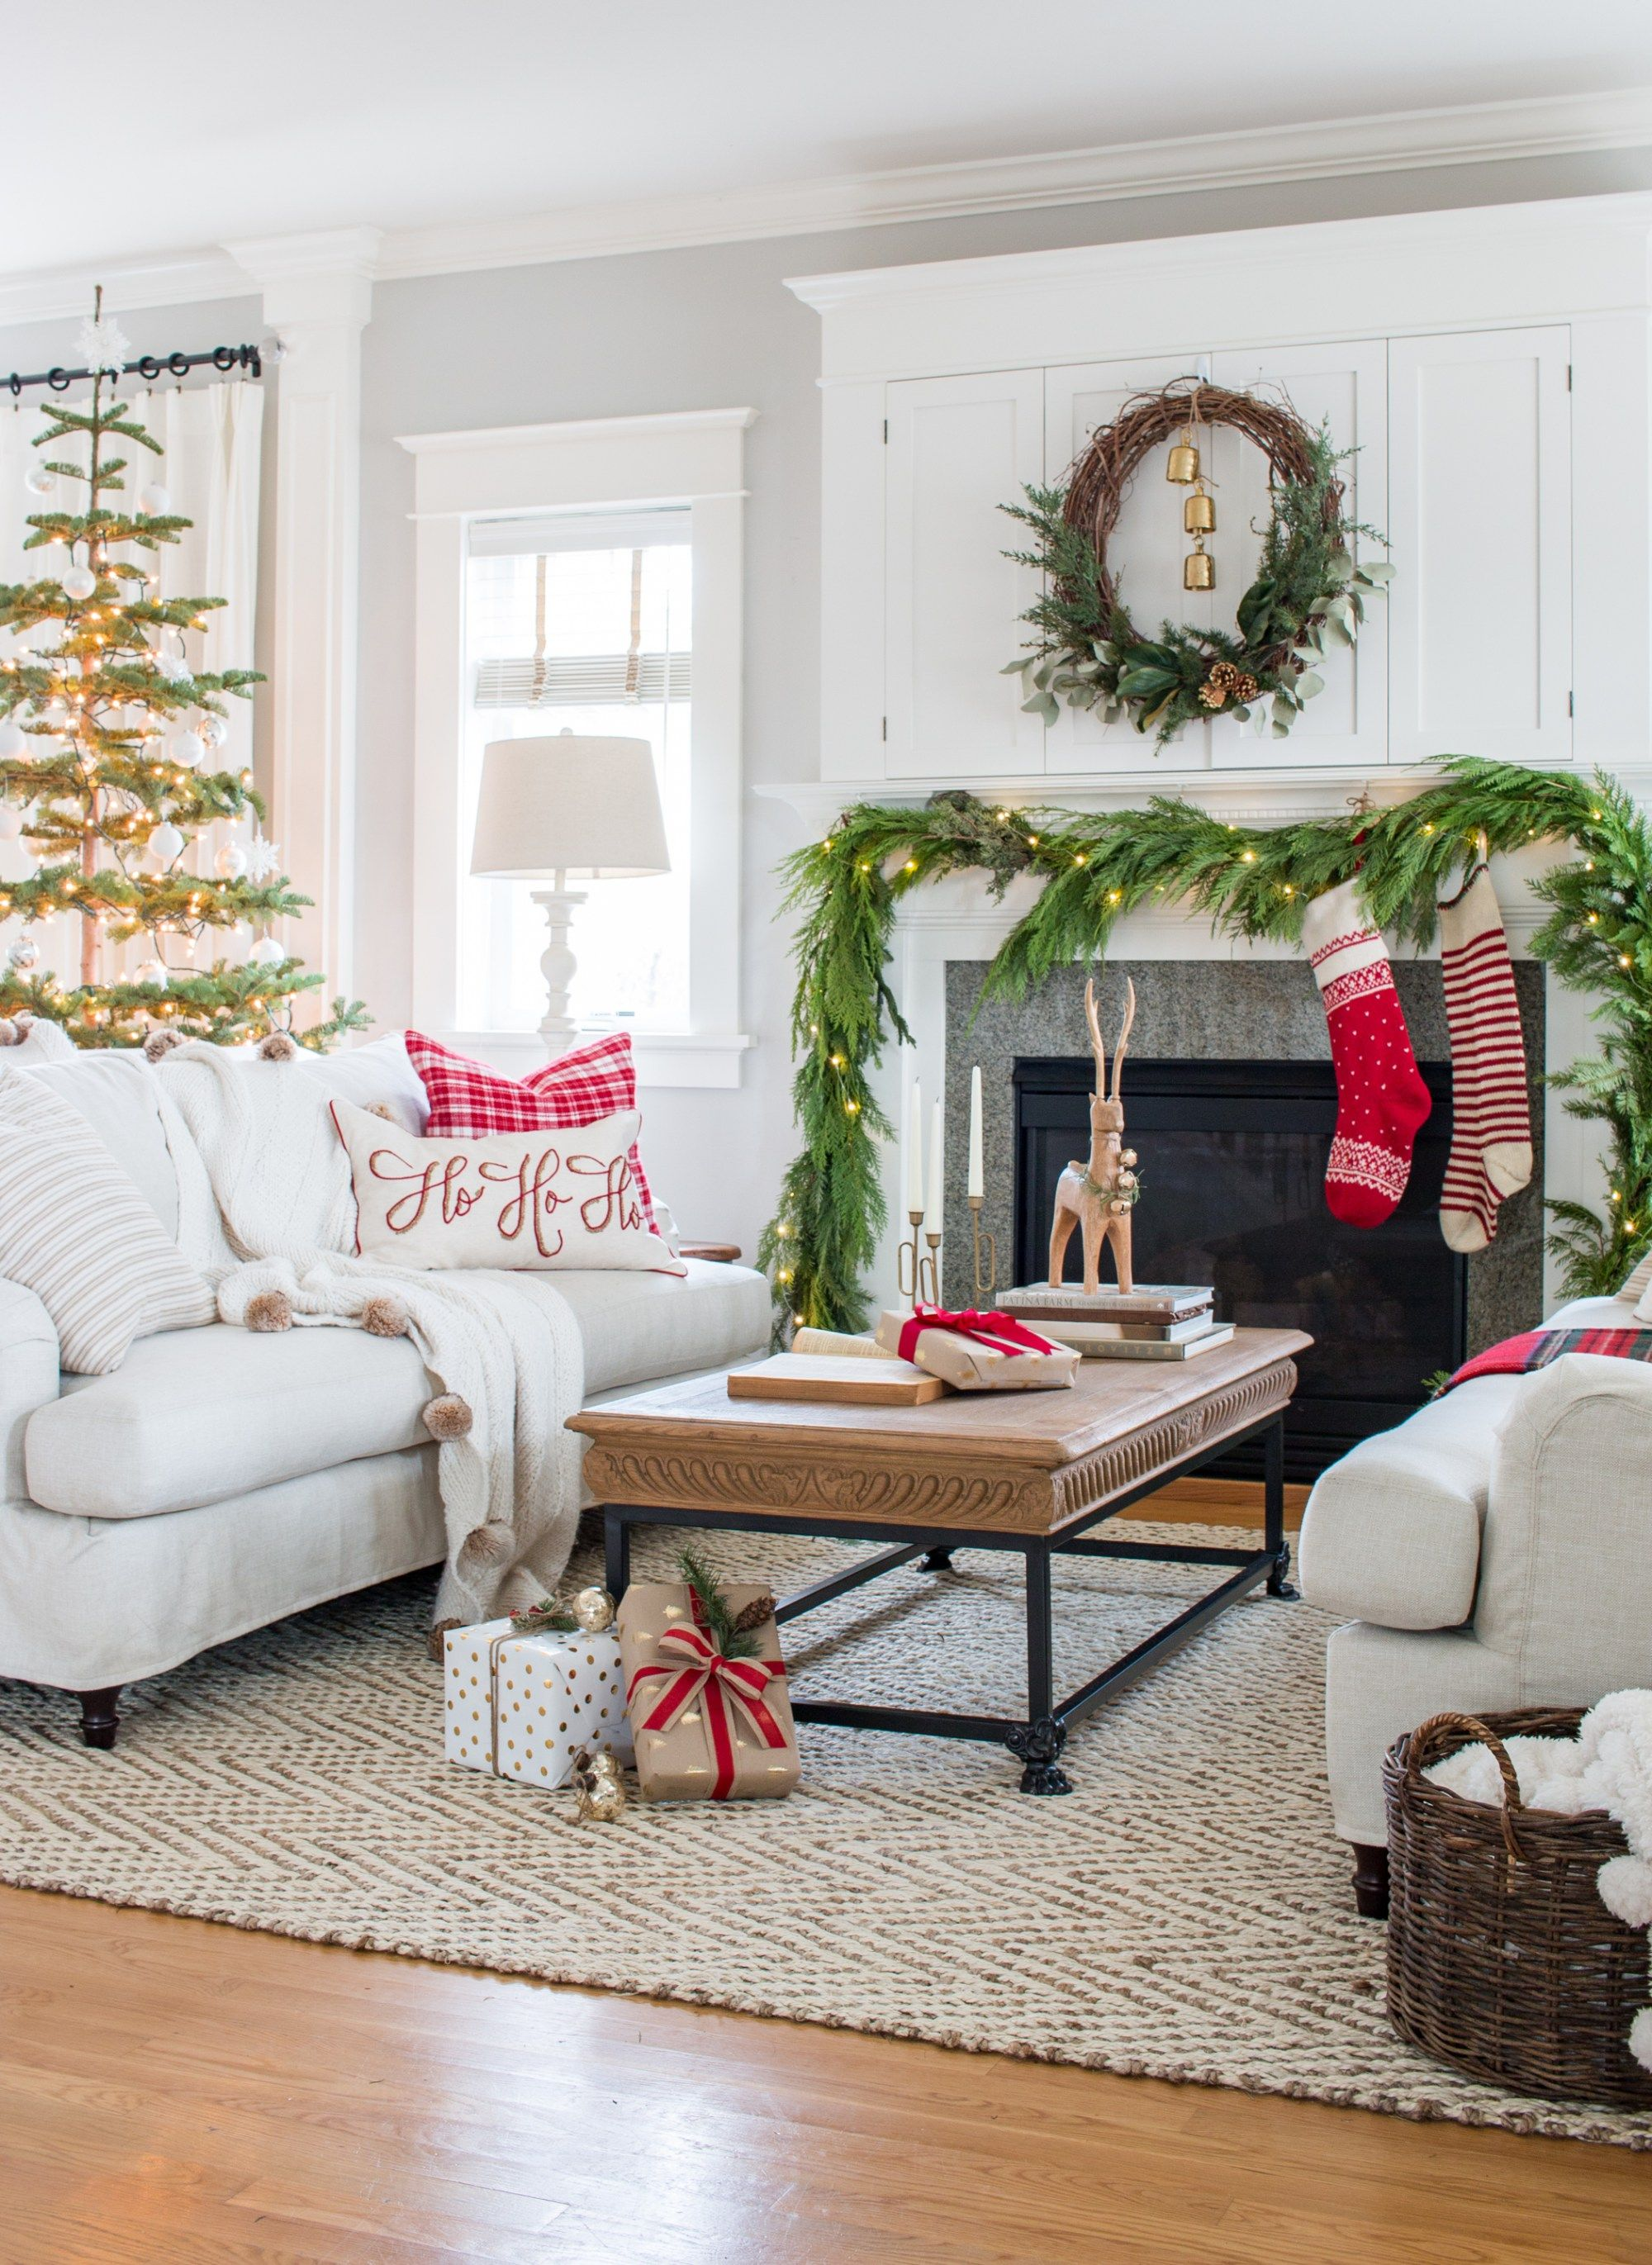 Tour a traditional Christmas living room with